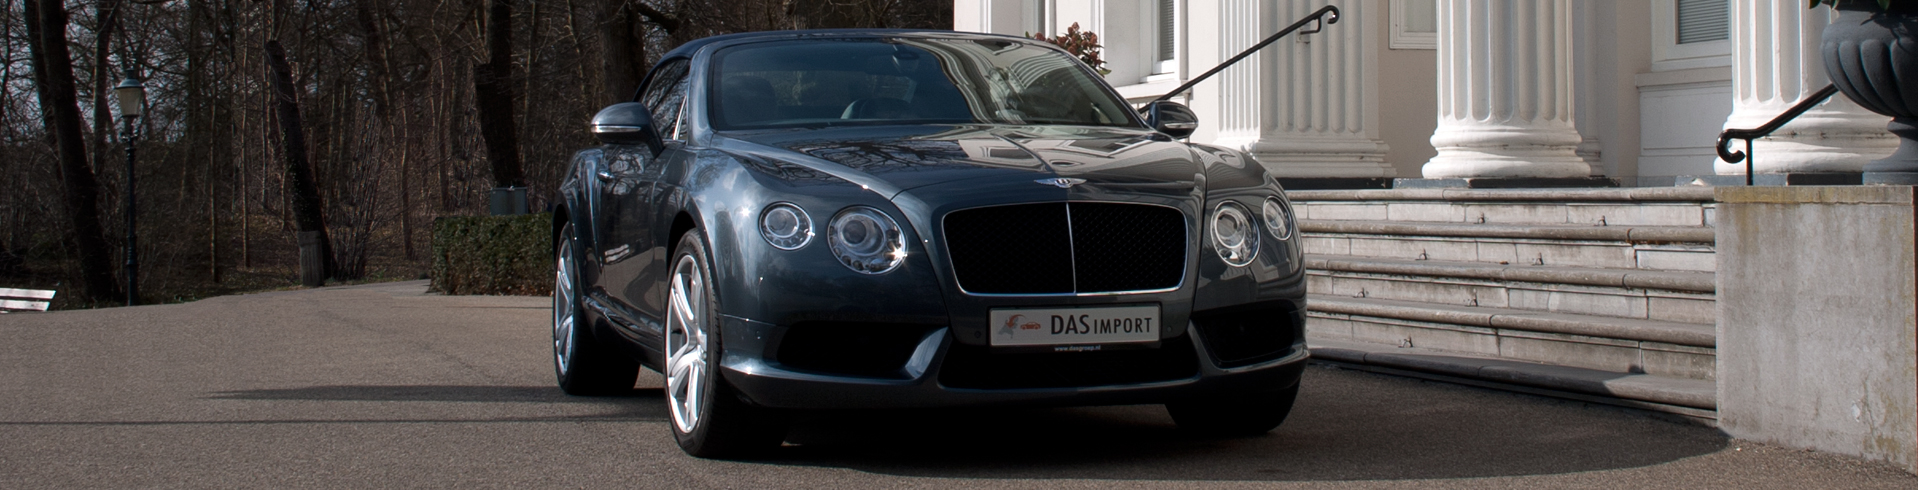 2.-Bentley-Continental-GTC